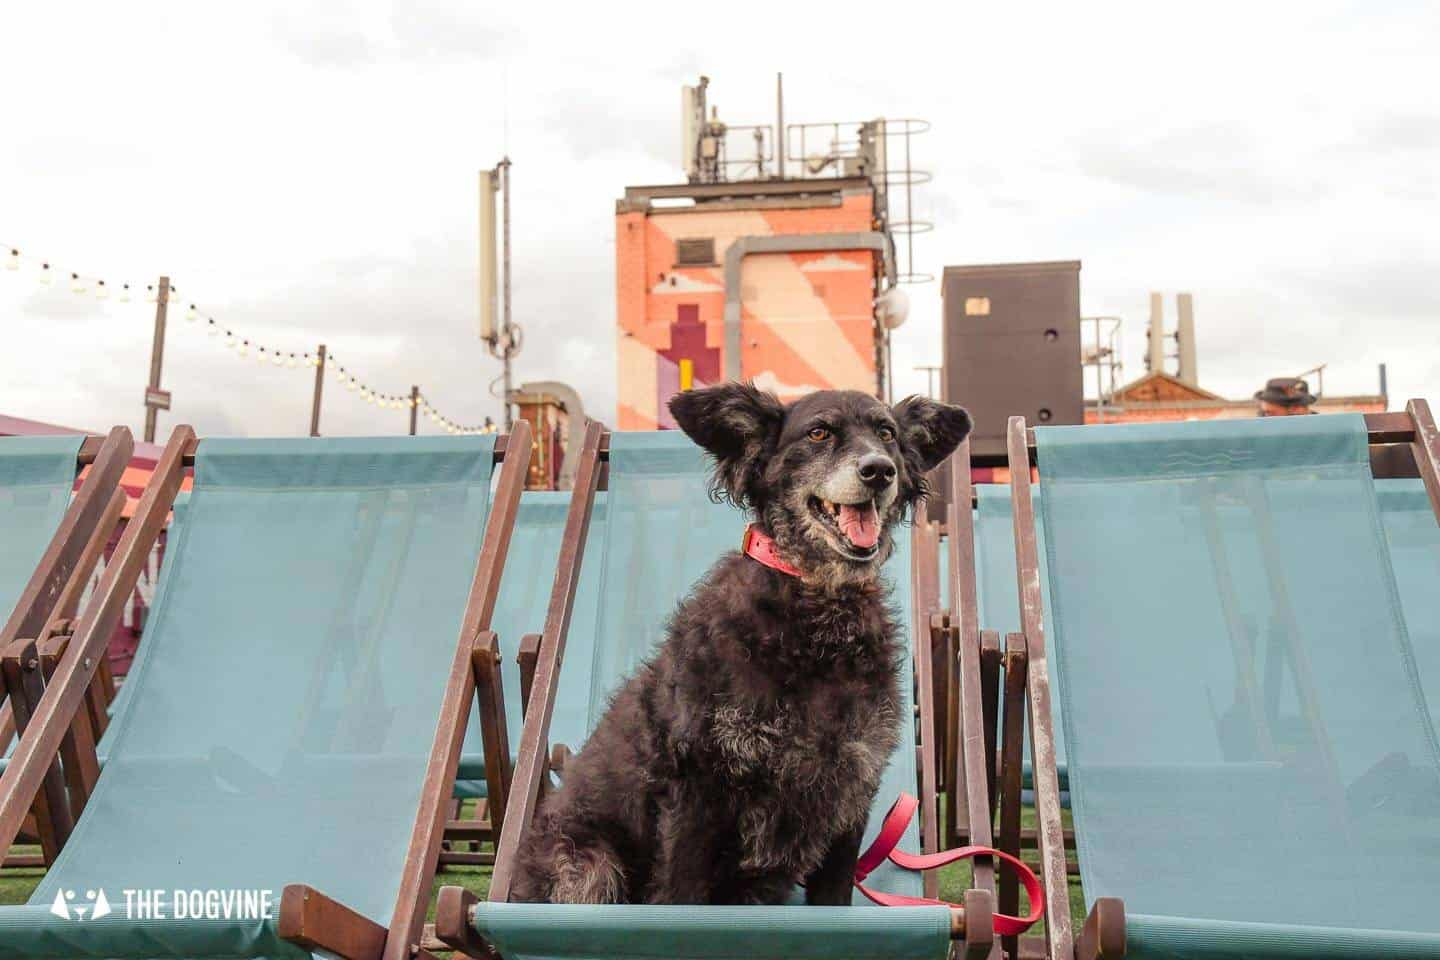 Spectacular Movie Moments at the Dog-friendly Rooftop Film Club 18